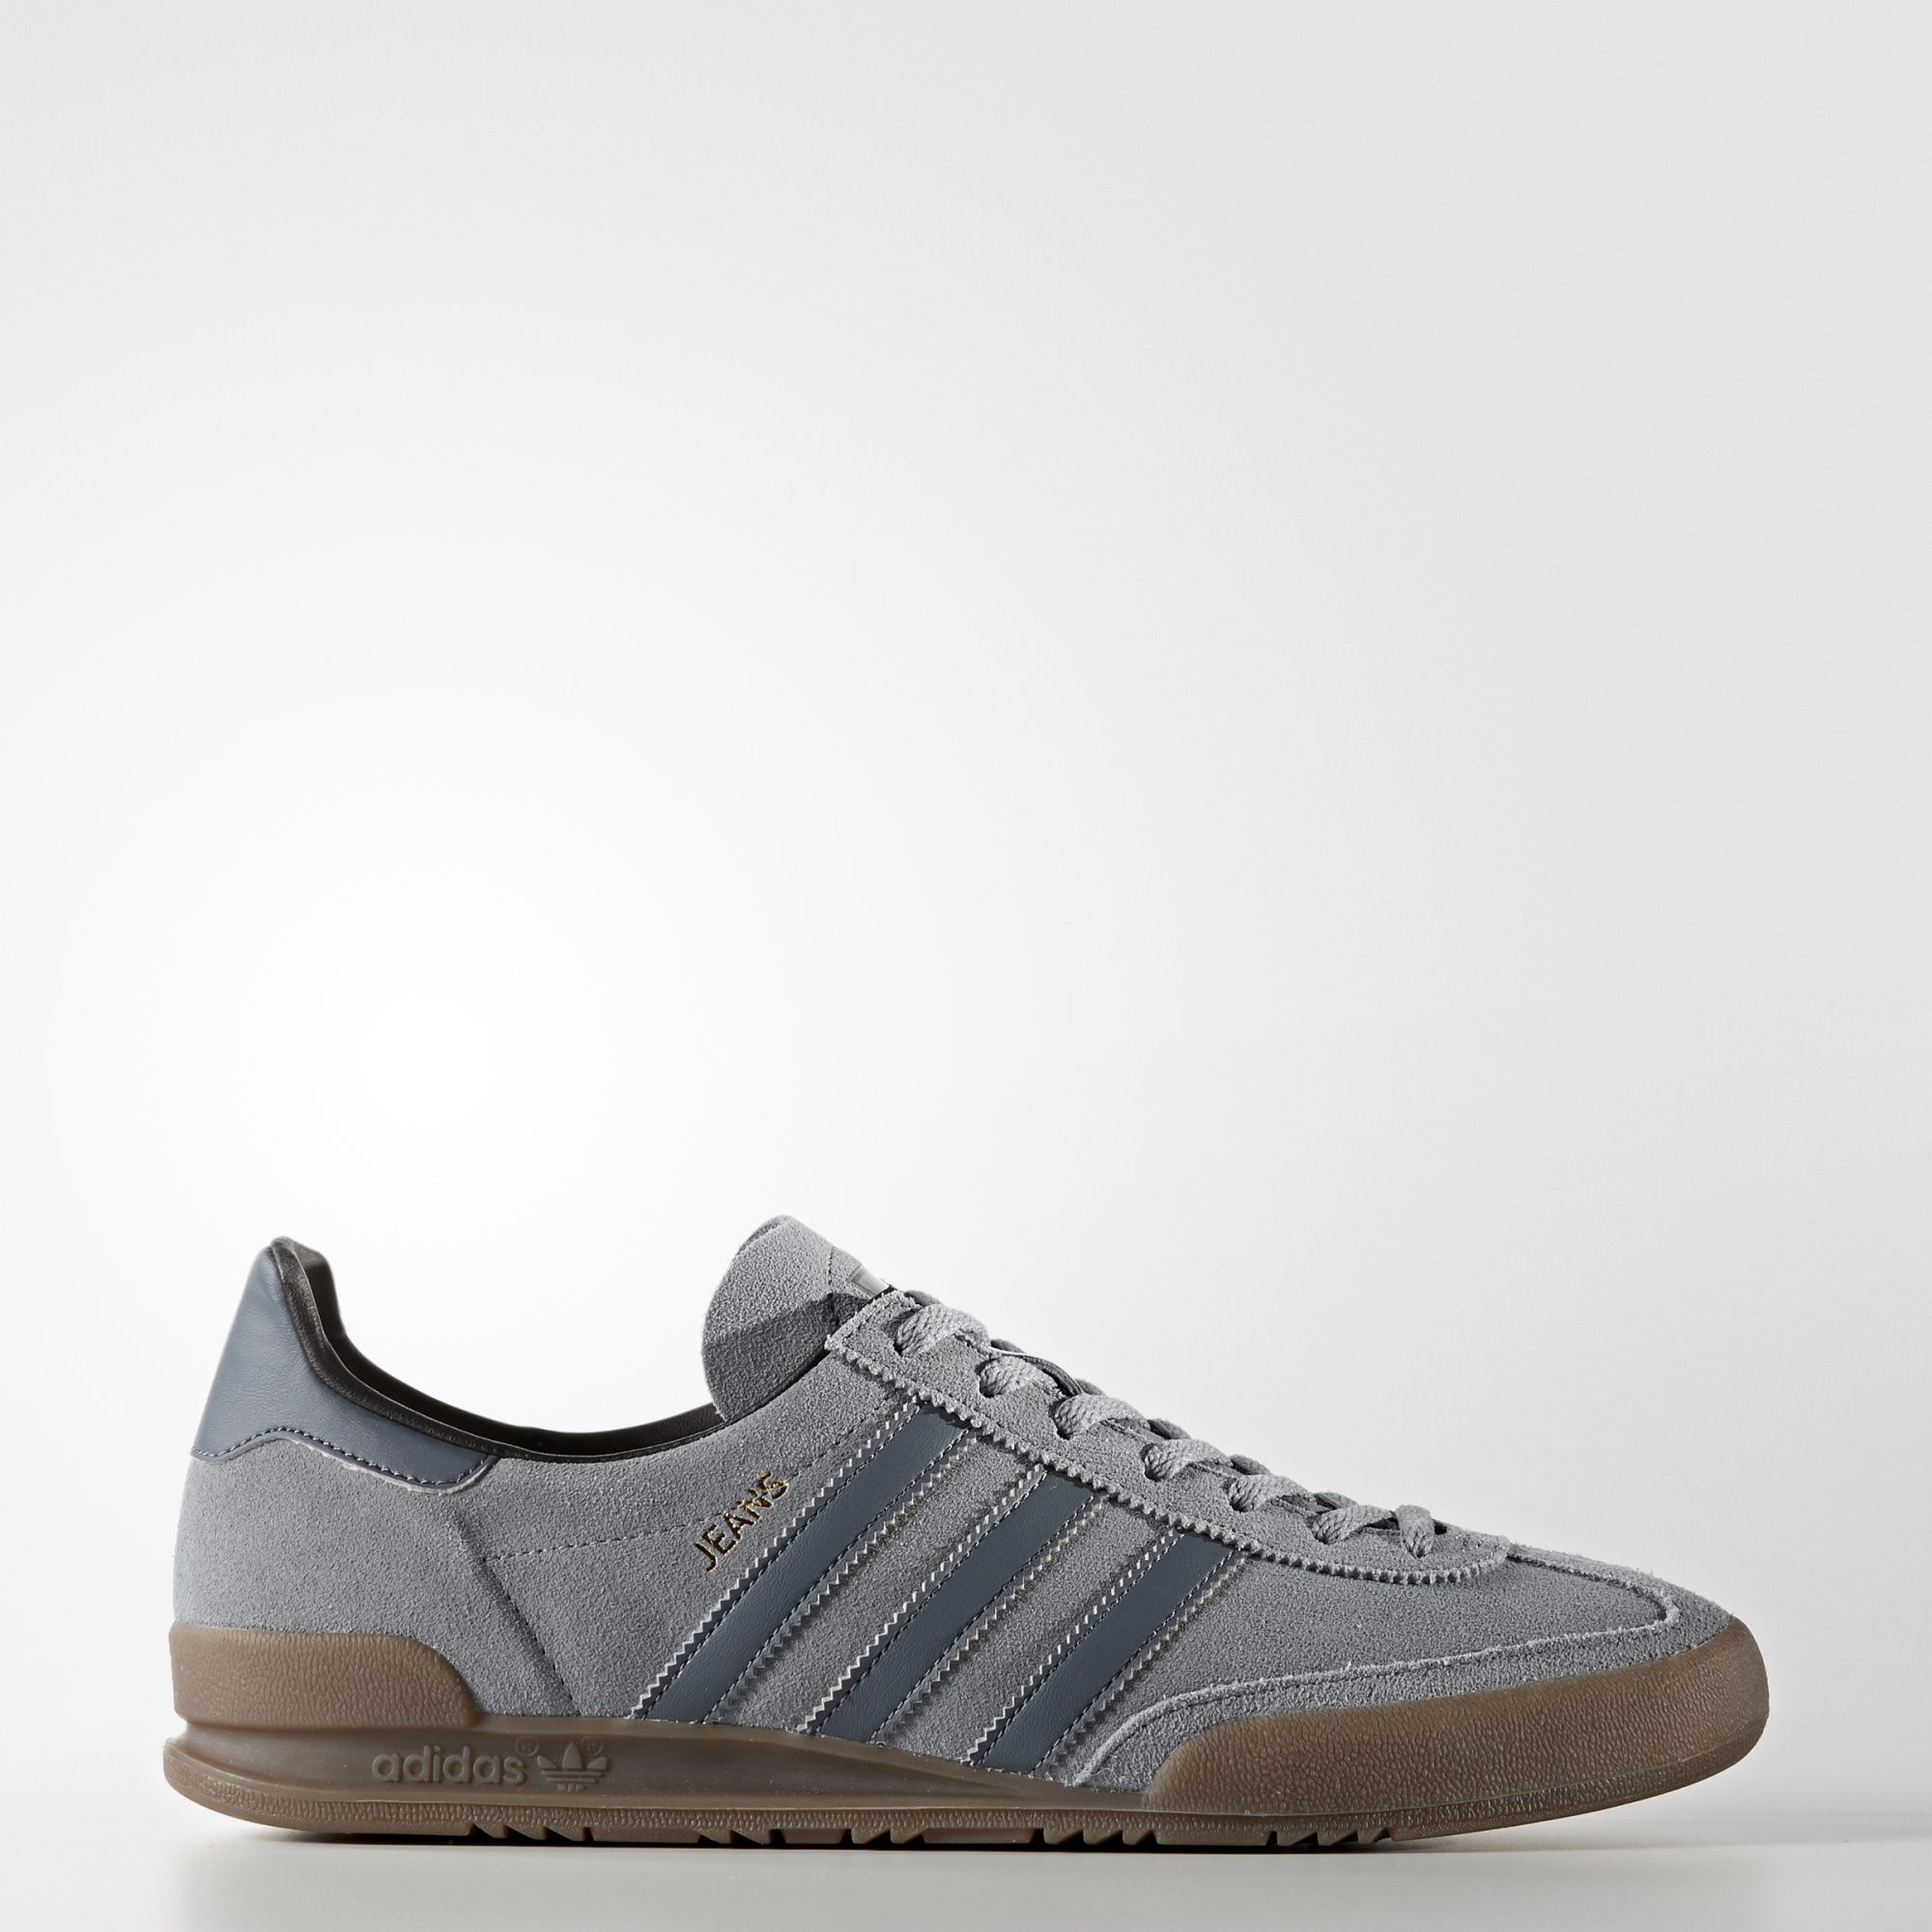 81ee04e88432 Adidas Jeans - Grey   Onix   Core Black